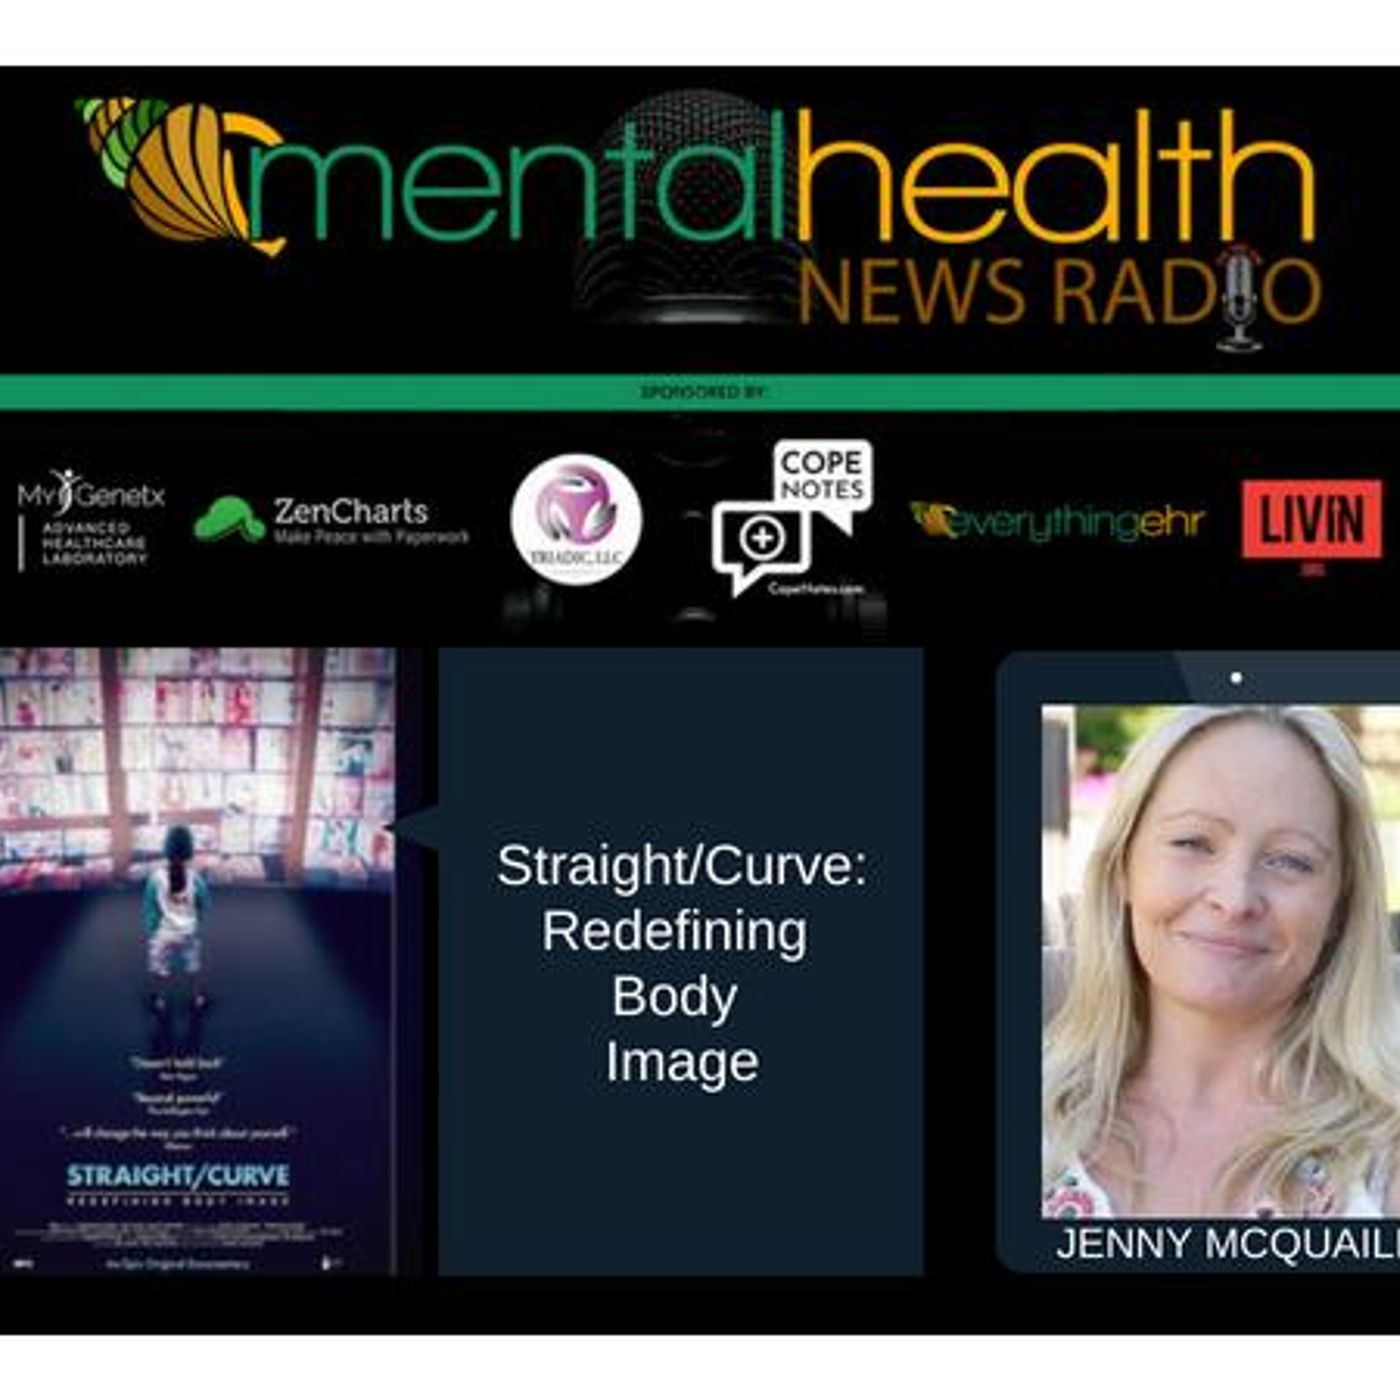 Mental Health News Radio - Straight/Curve: Redefining Body Image with Director Jenny McQuaile